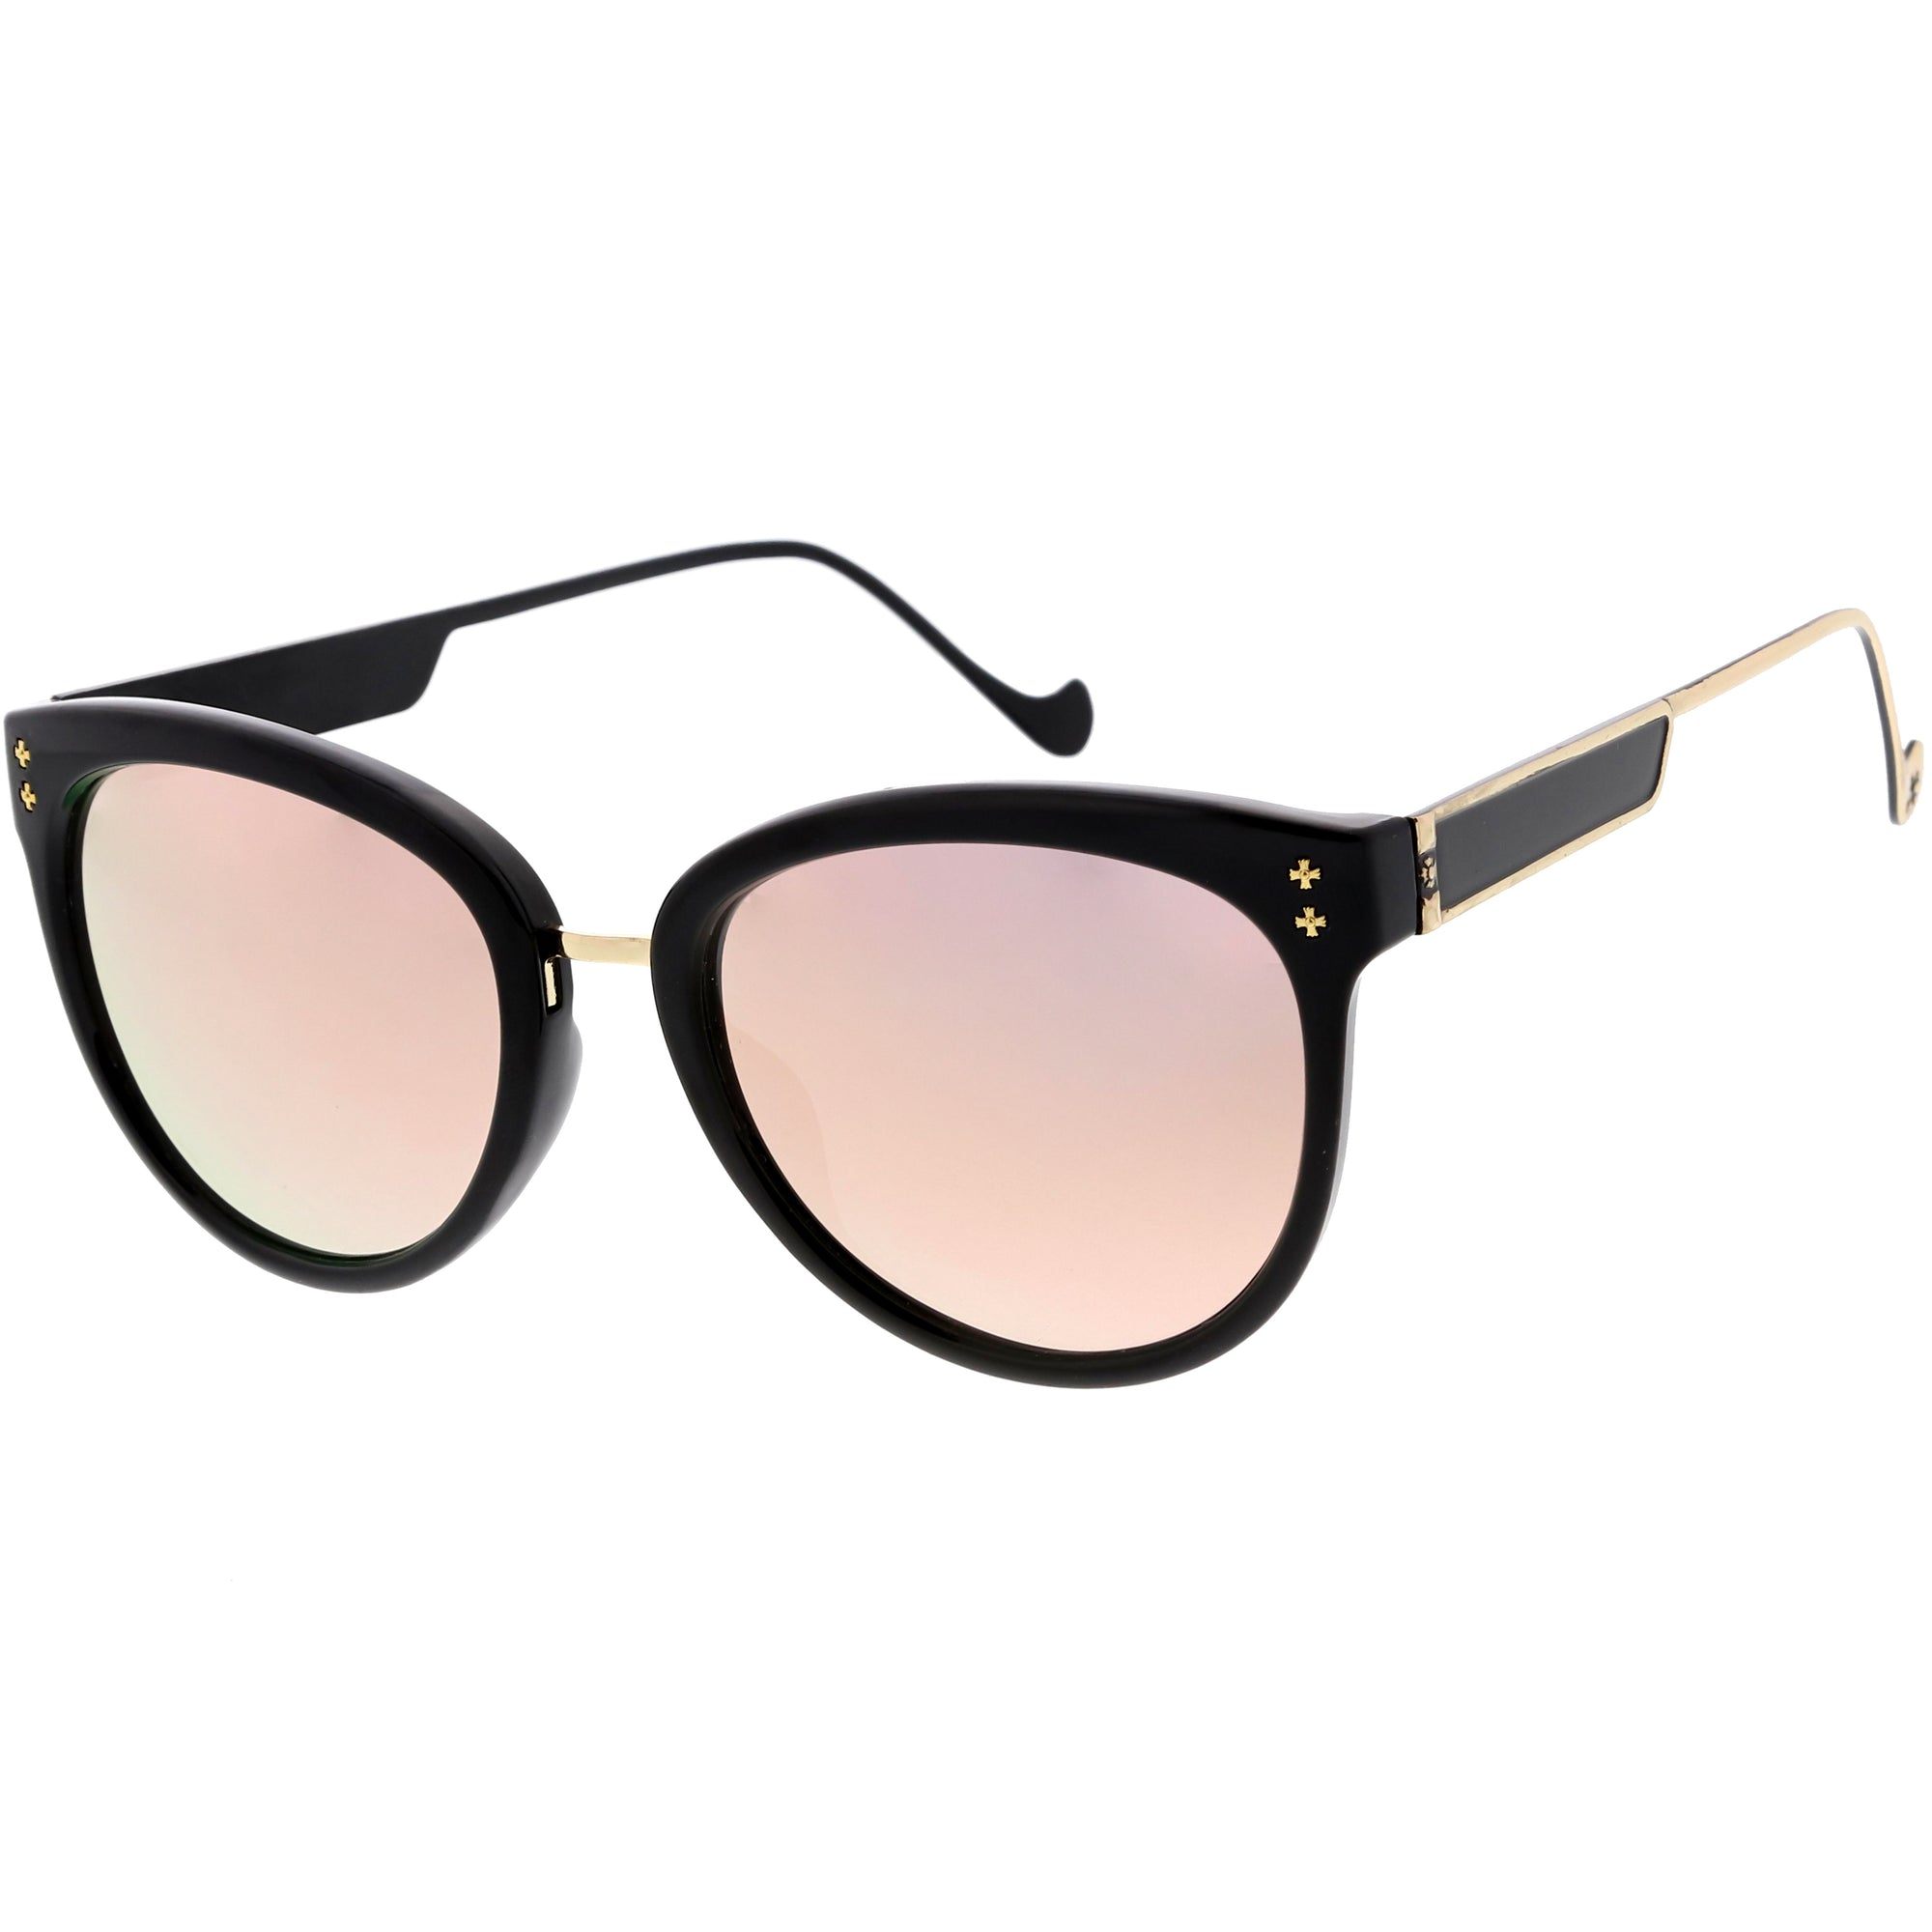 Chic Horn Rimmed Cat Eye Sunglasses Round Colored Mirror